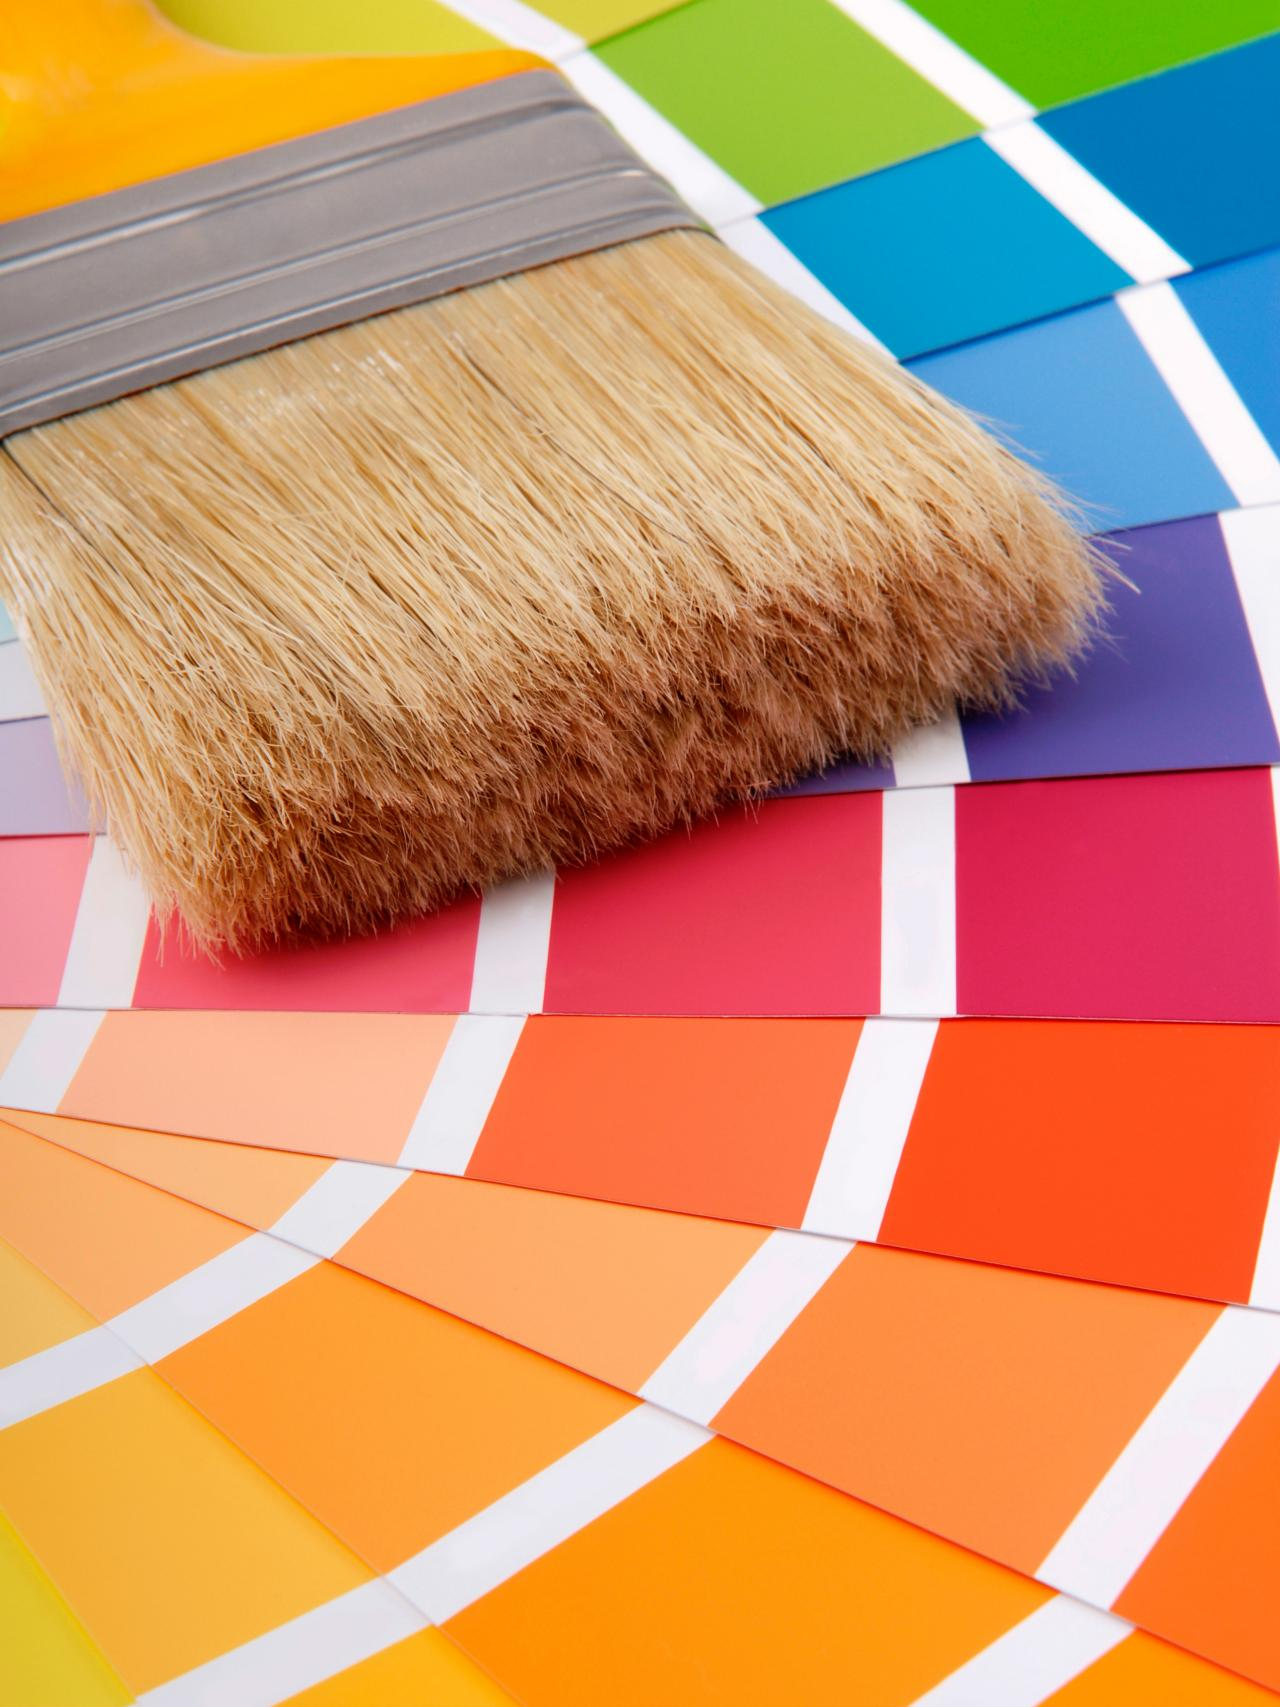 How To Select The Right Paint And Color For Your Home